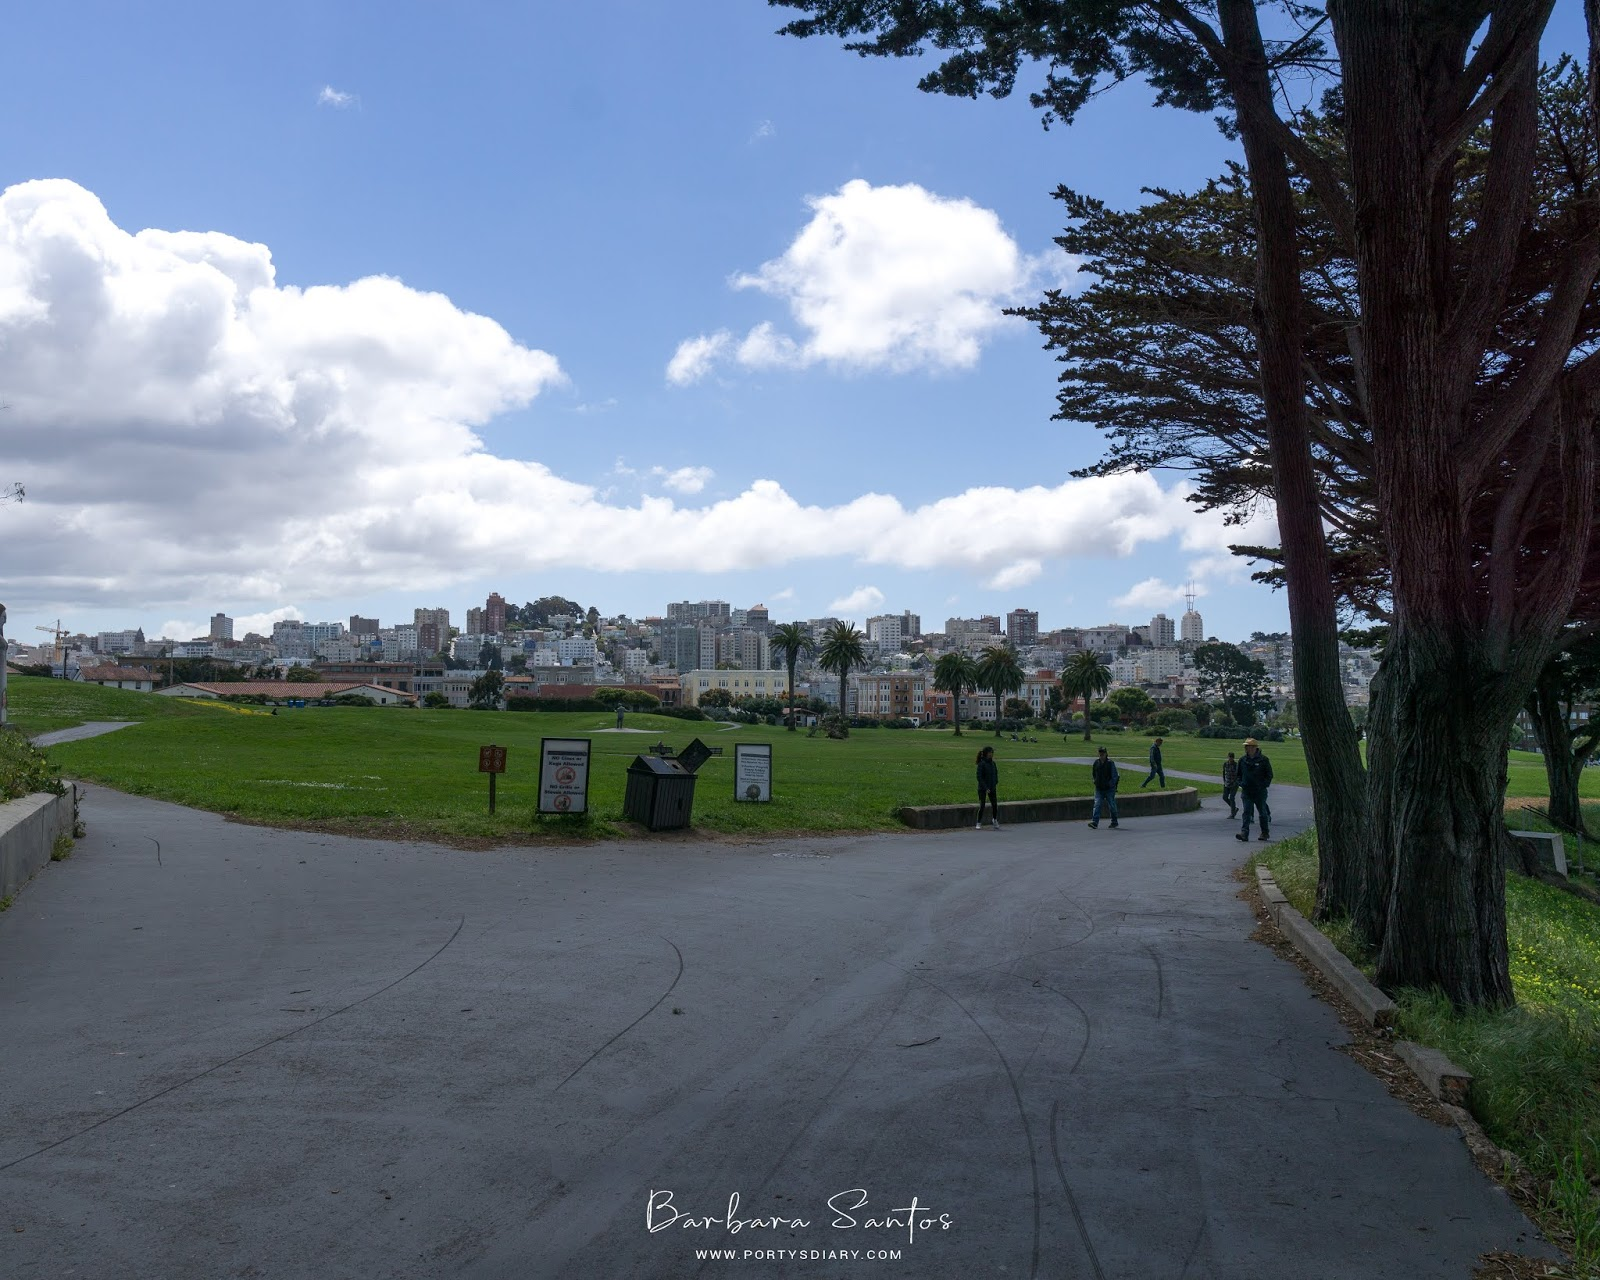 Fort Mason - Travel - A week in San Francisco. All photos with Sony a6000 & sigma 16mm by Barbara Santos for WWW.PORTYSDIARY.COM